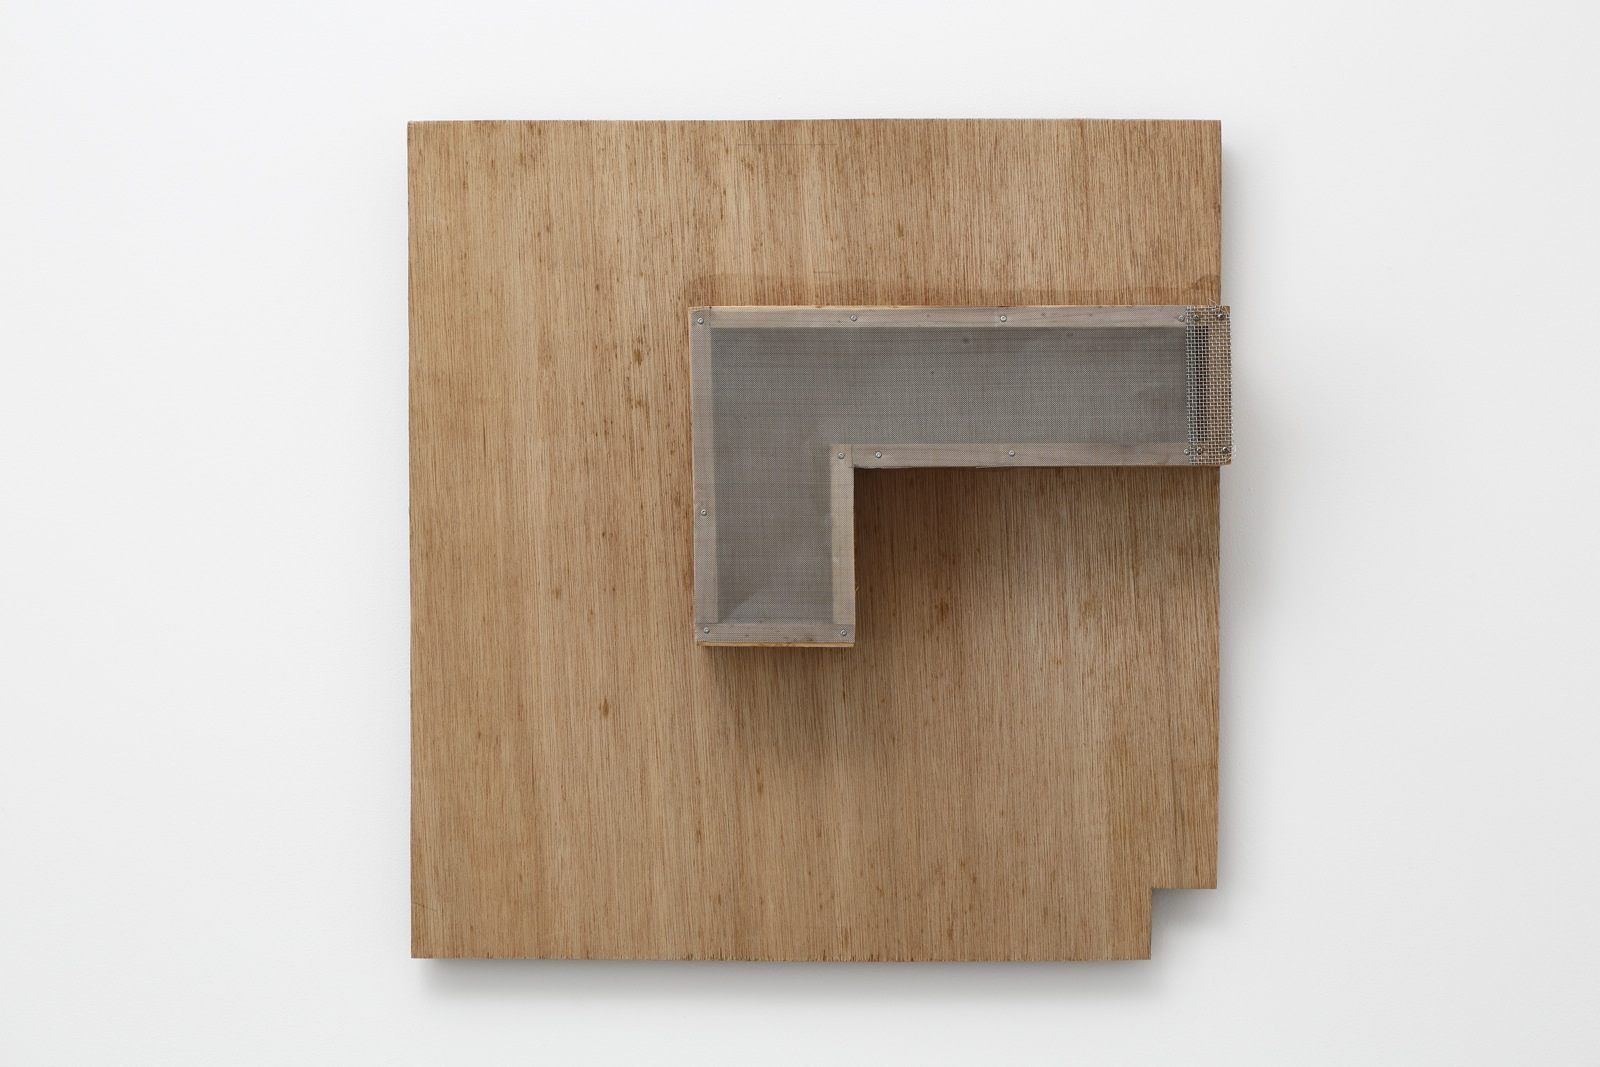 Gathered Fastening—3 , 1987 集留—3 ( Shūryū—3 ) Plywood, wire mesh 20 1/2 x 19 3/4 x 4 3/4 inches  52 x 50 x 12 centimeters